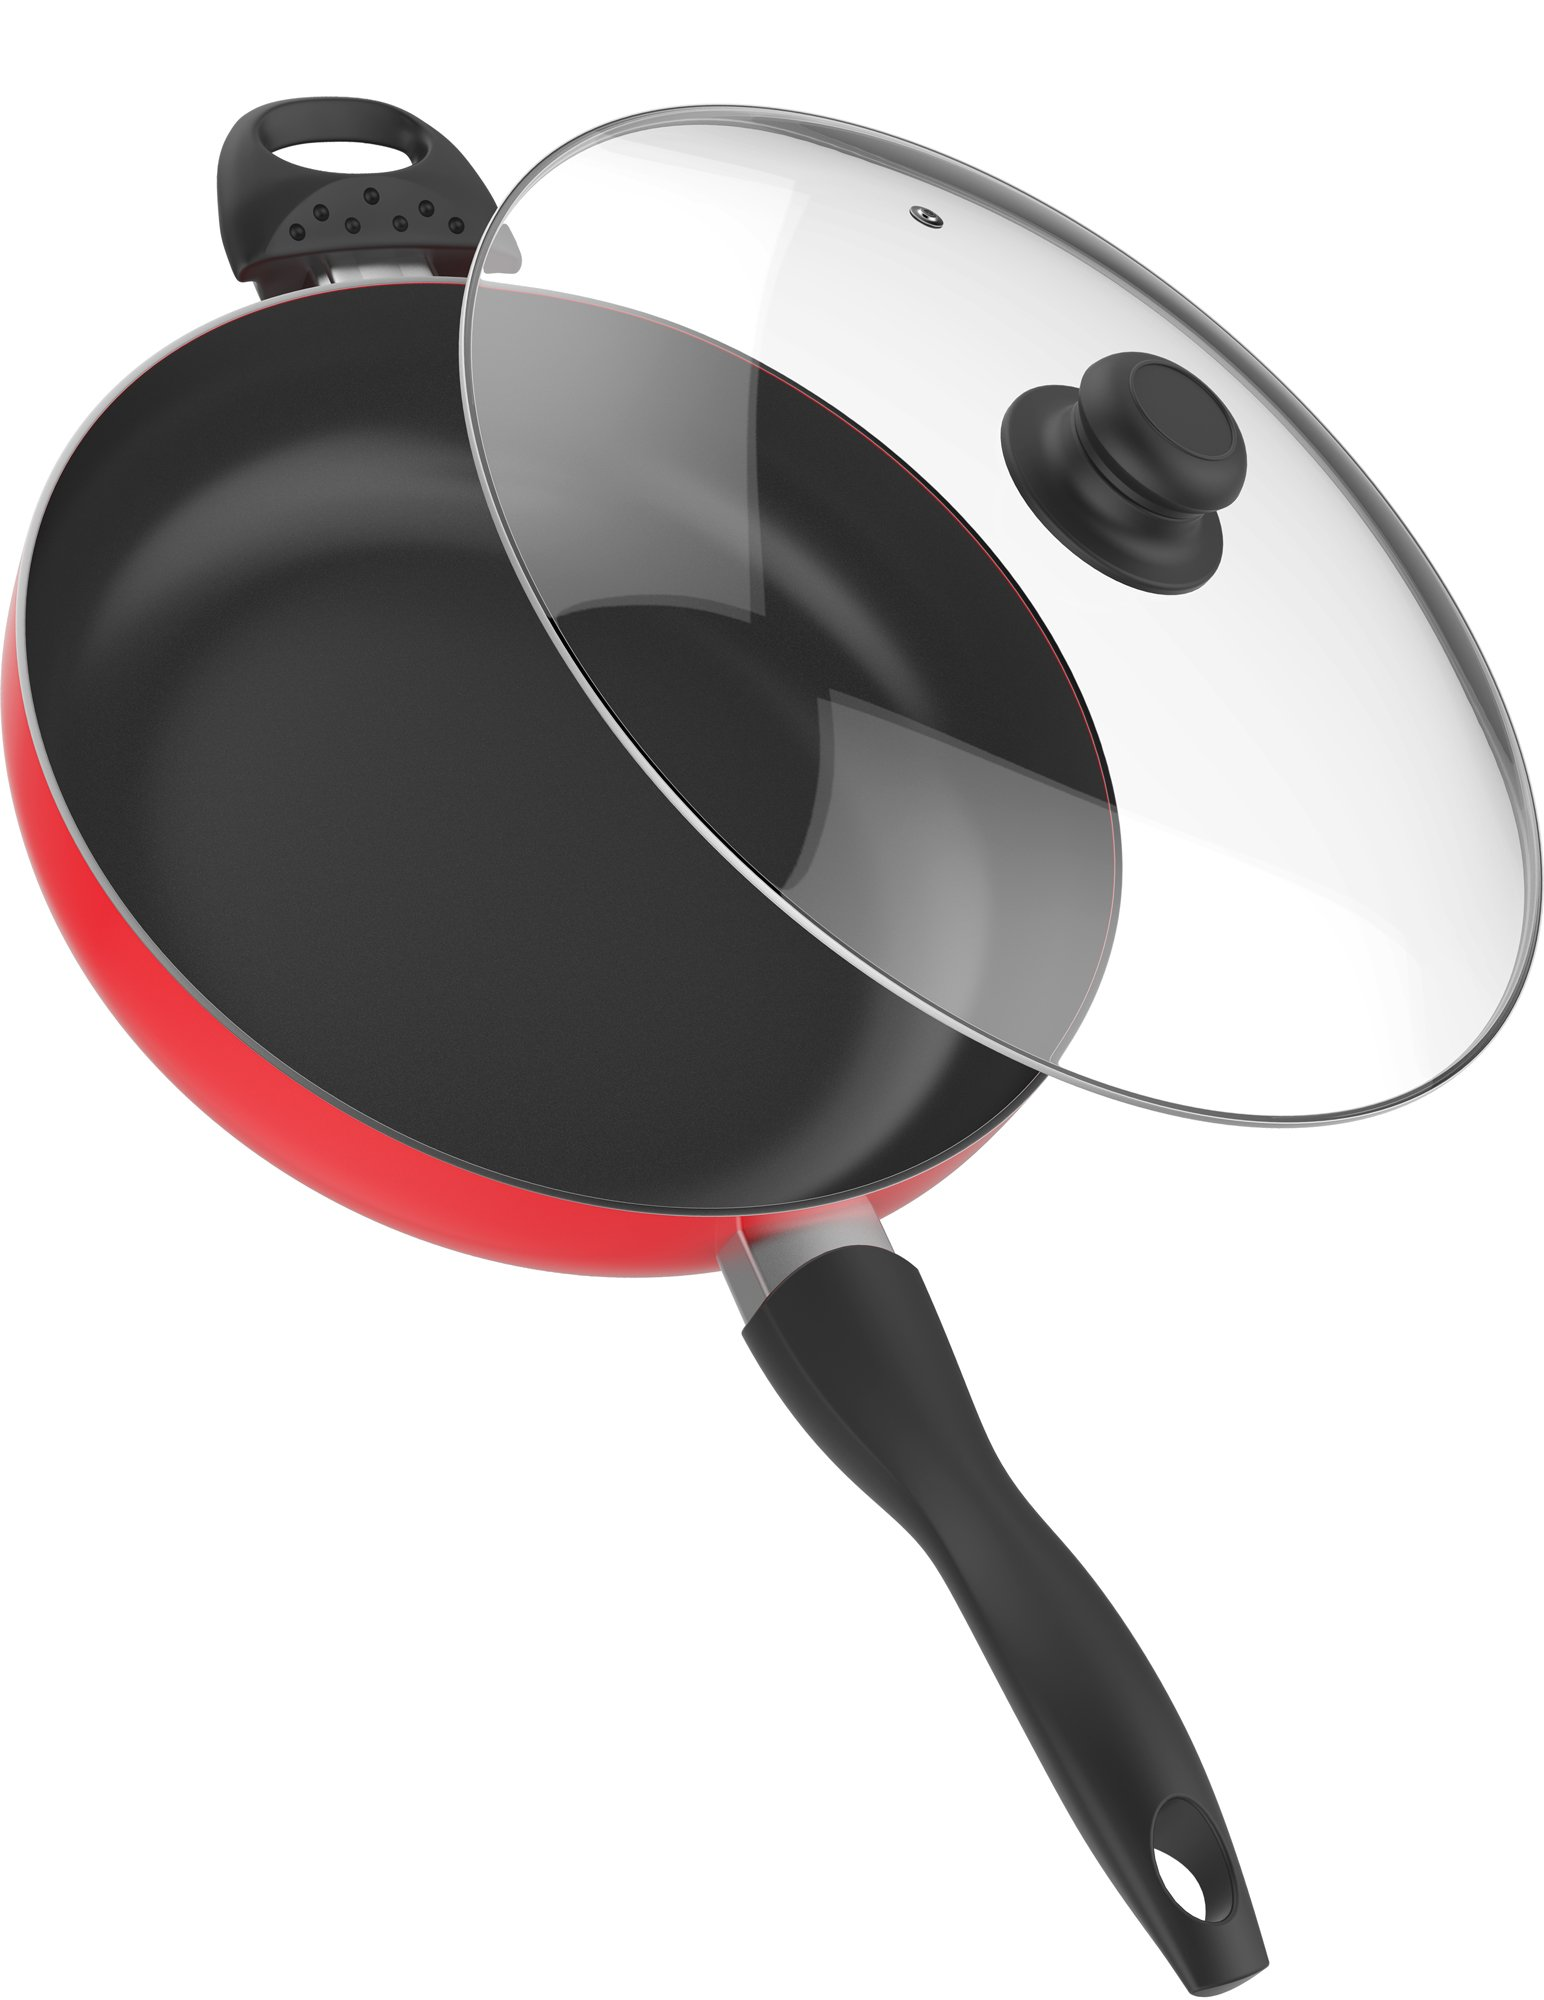 Vremi 12 Inch Nonstick Saute Pan Covered with Tempered Glass Lid - Big 5 Quart Capacity for Stir Fry Frying or as Saucepan - Non Stick Saute and Frying Pan - Deep Large and Ovenproof - Red by Vremi